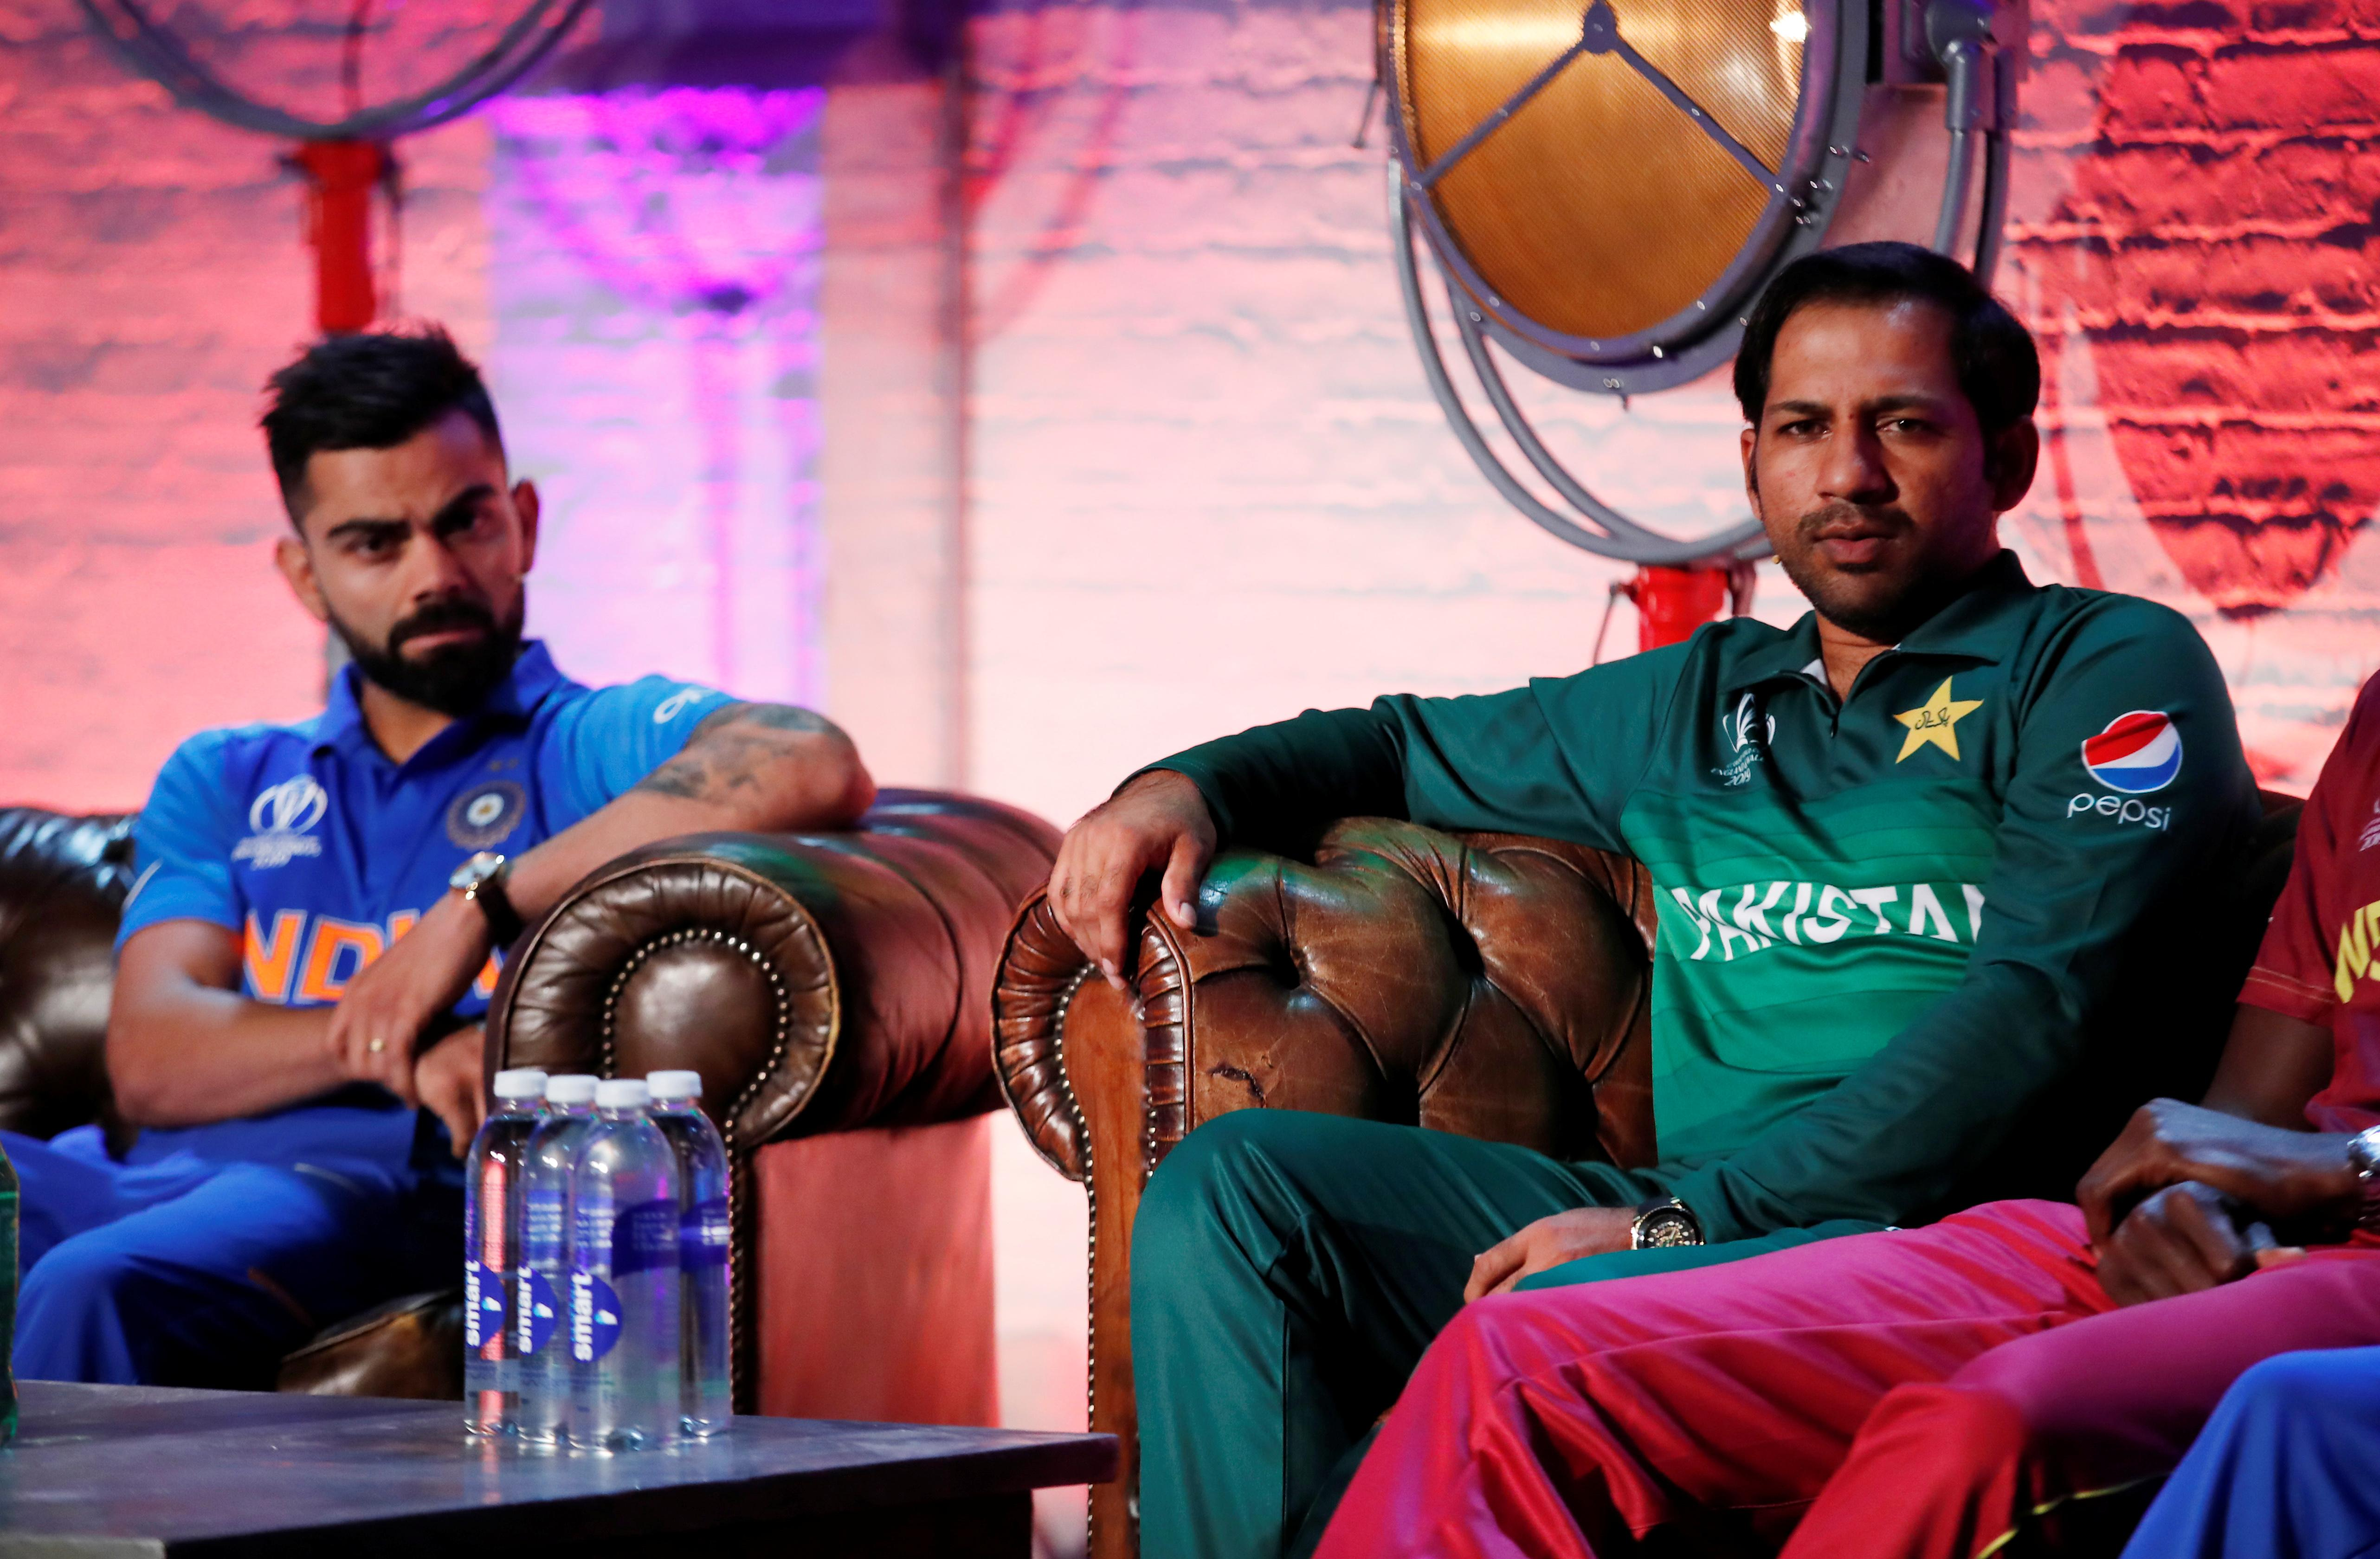 Cricket: Rivals India and Pakistan meet in Manchester